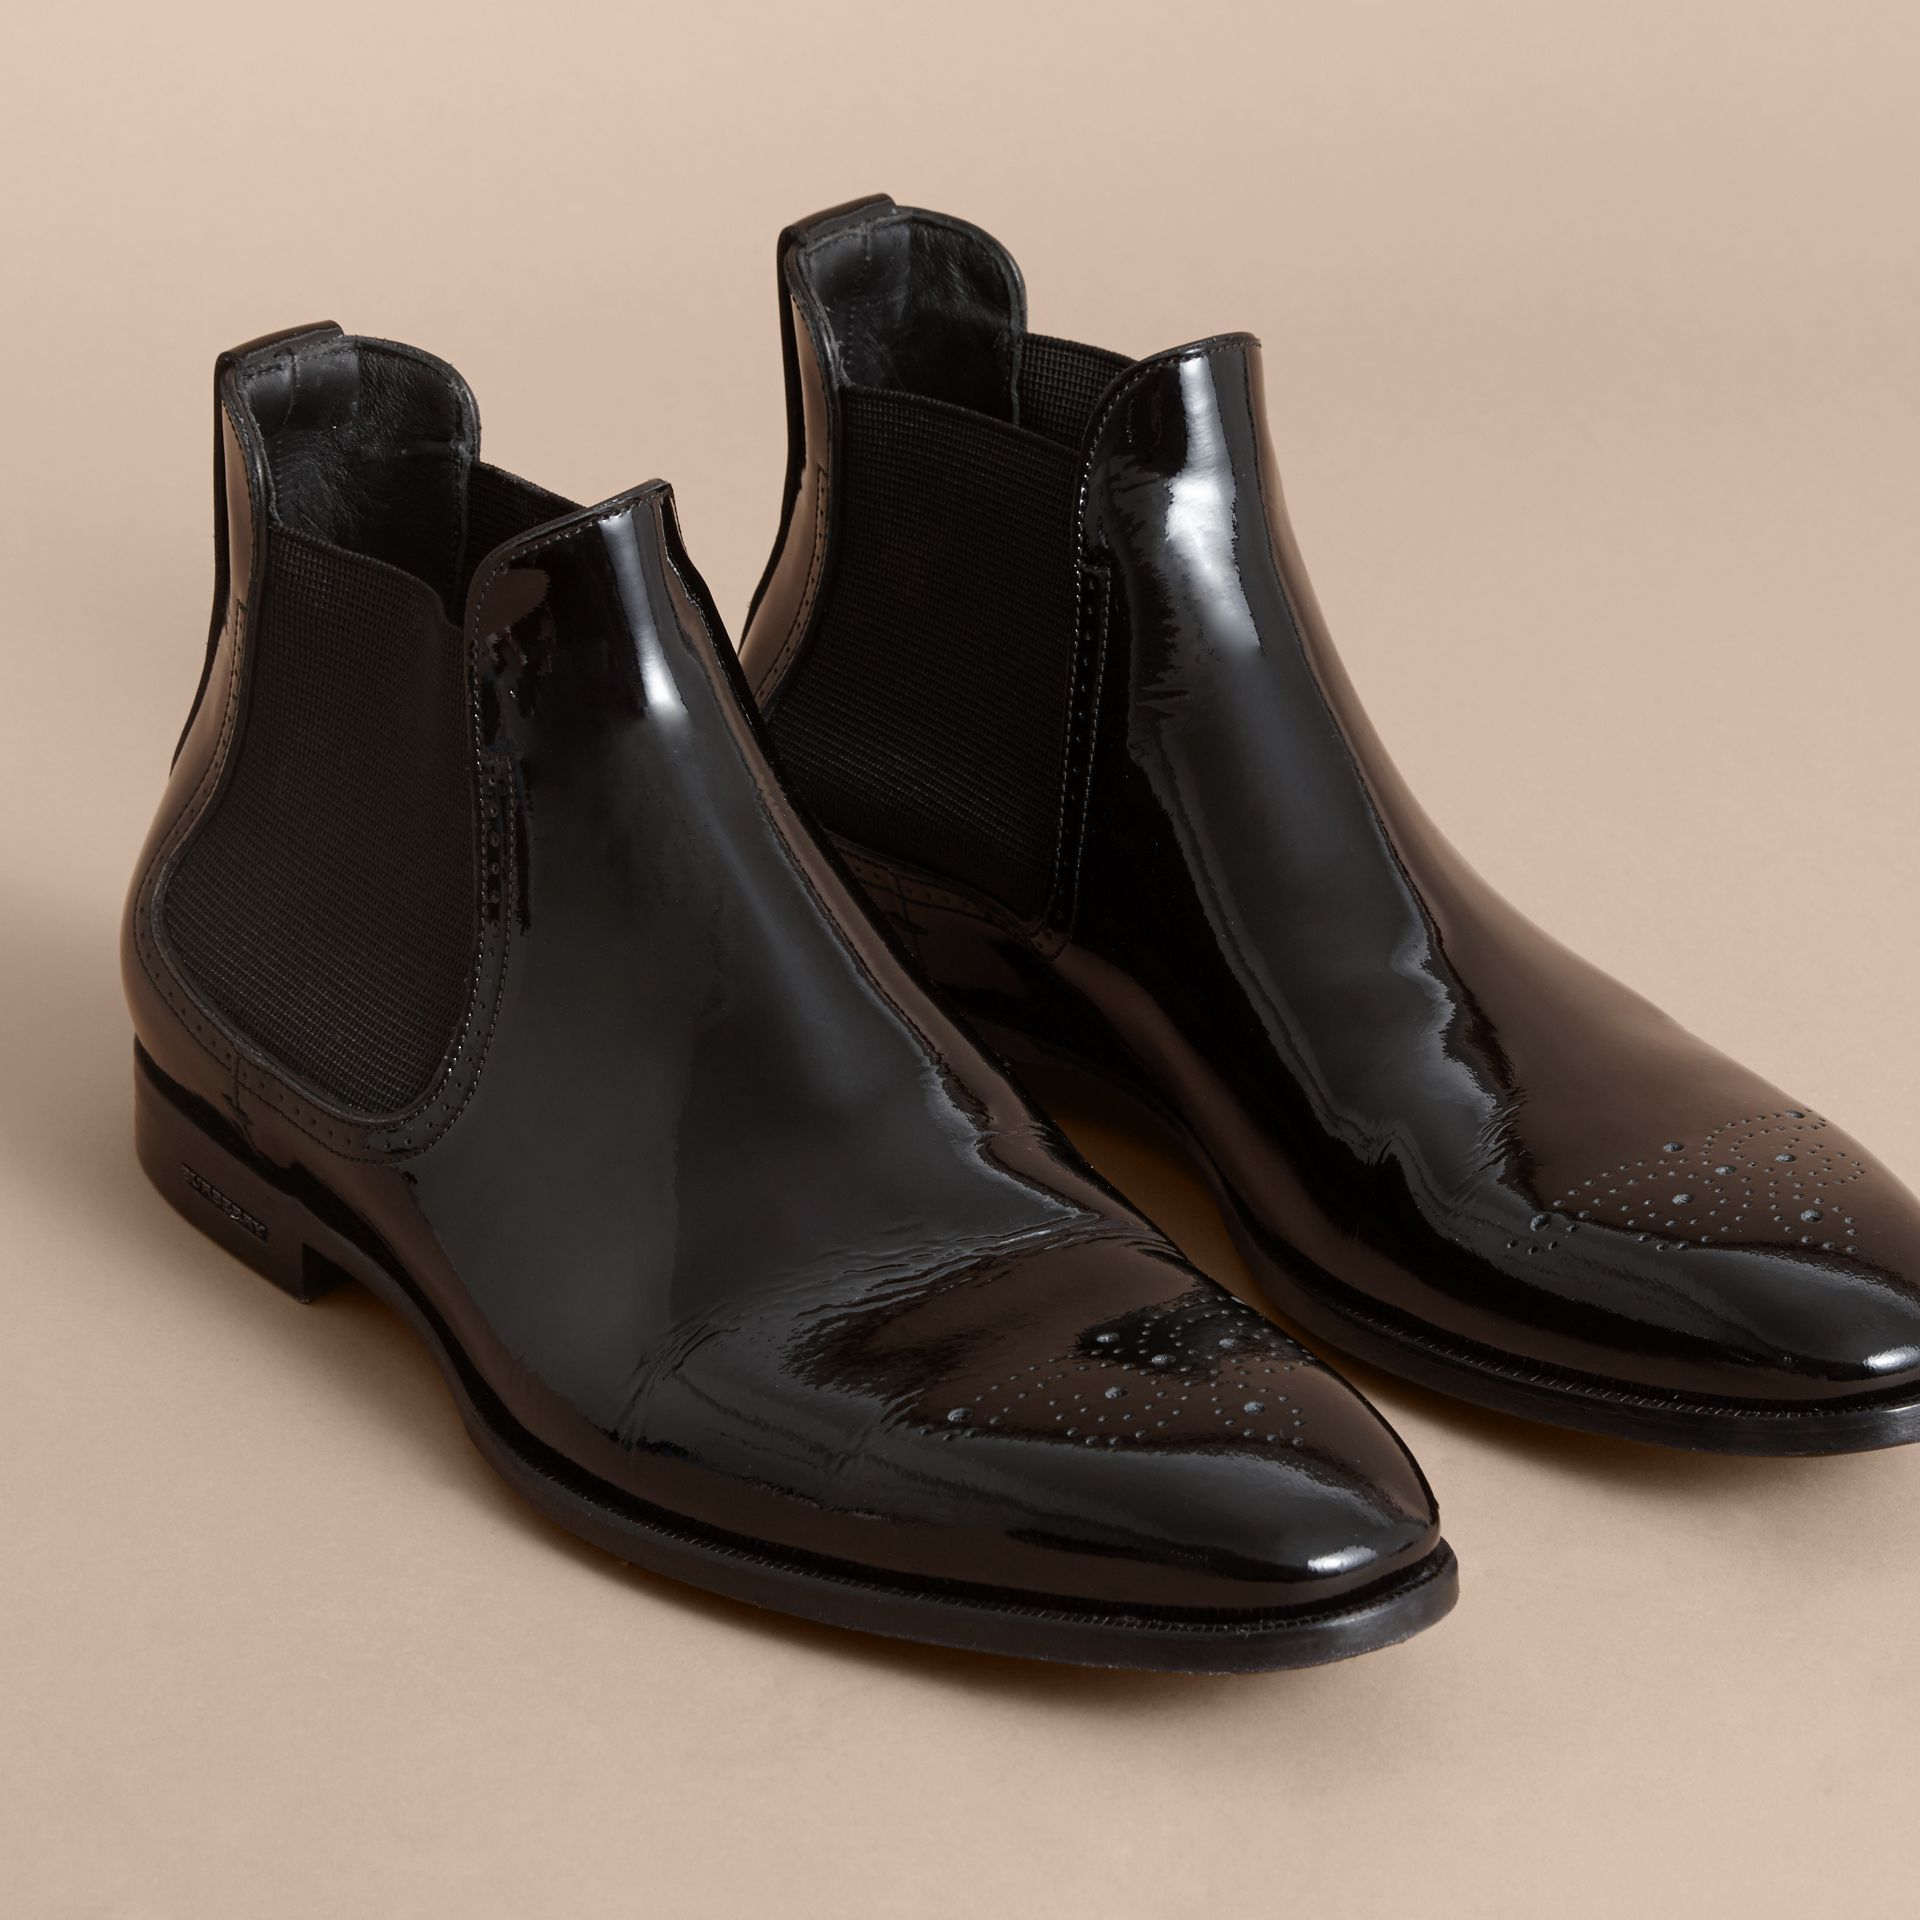 Polished Leather Chelsea Boots in Black - Men | Burberry - gallery image 5